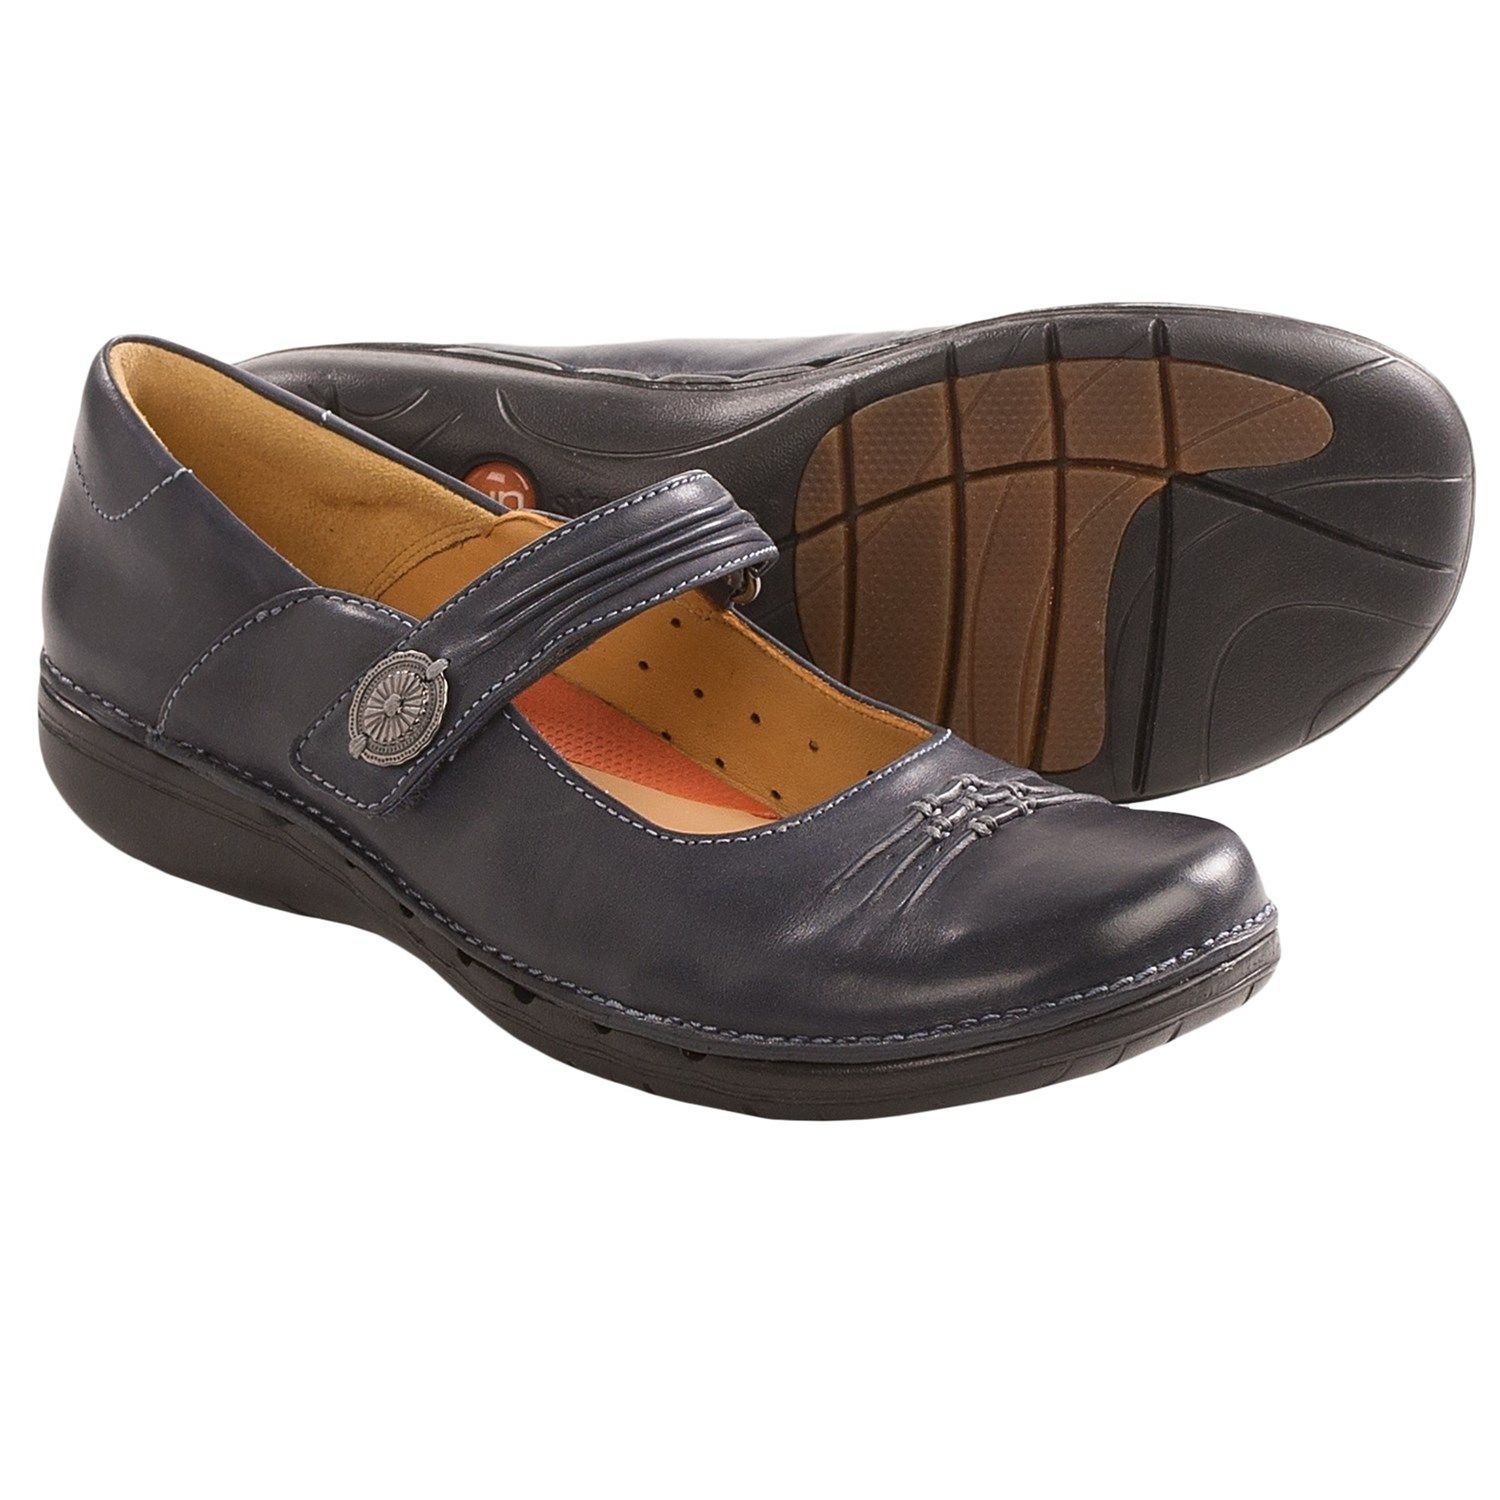 Clarks Un.Linda Mary Jane Shoes (For Women) - Save 33% 45b4cb8c23ca